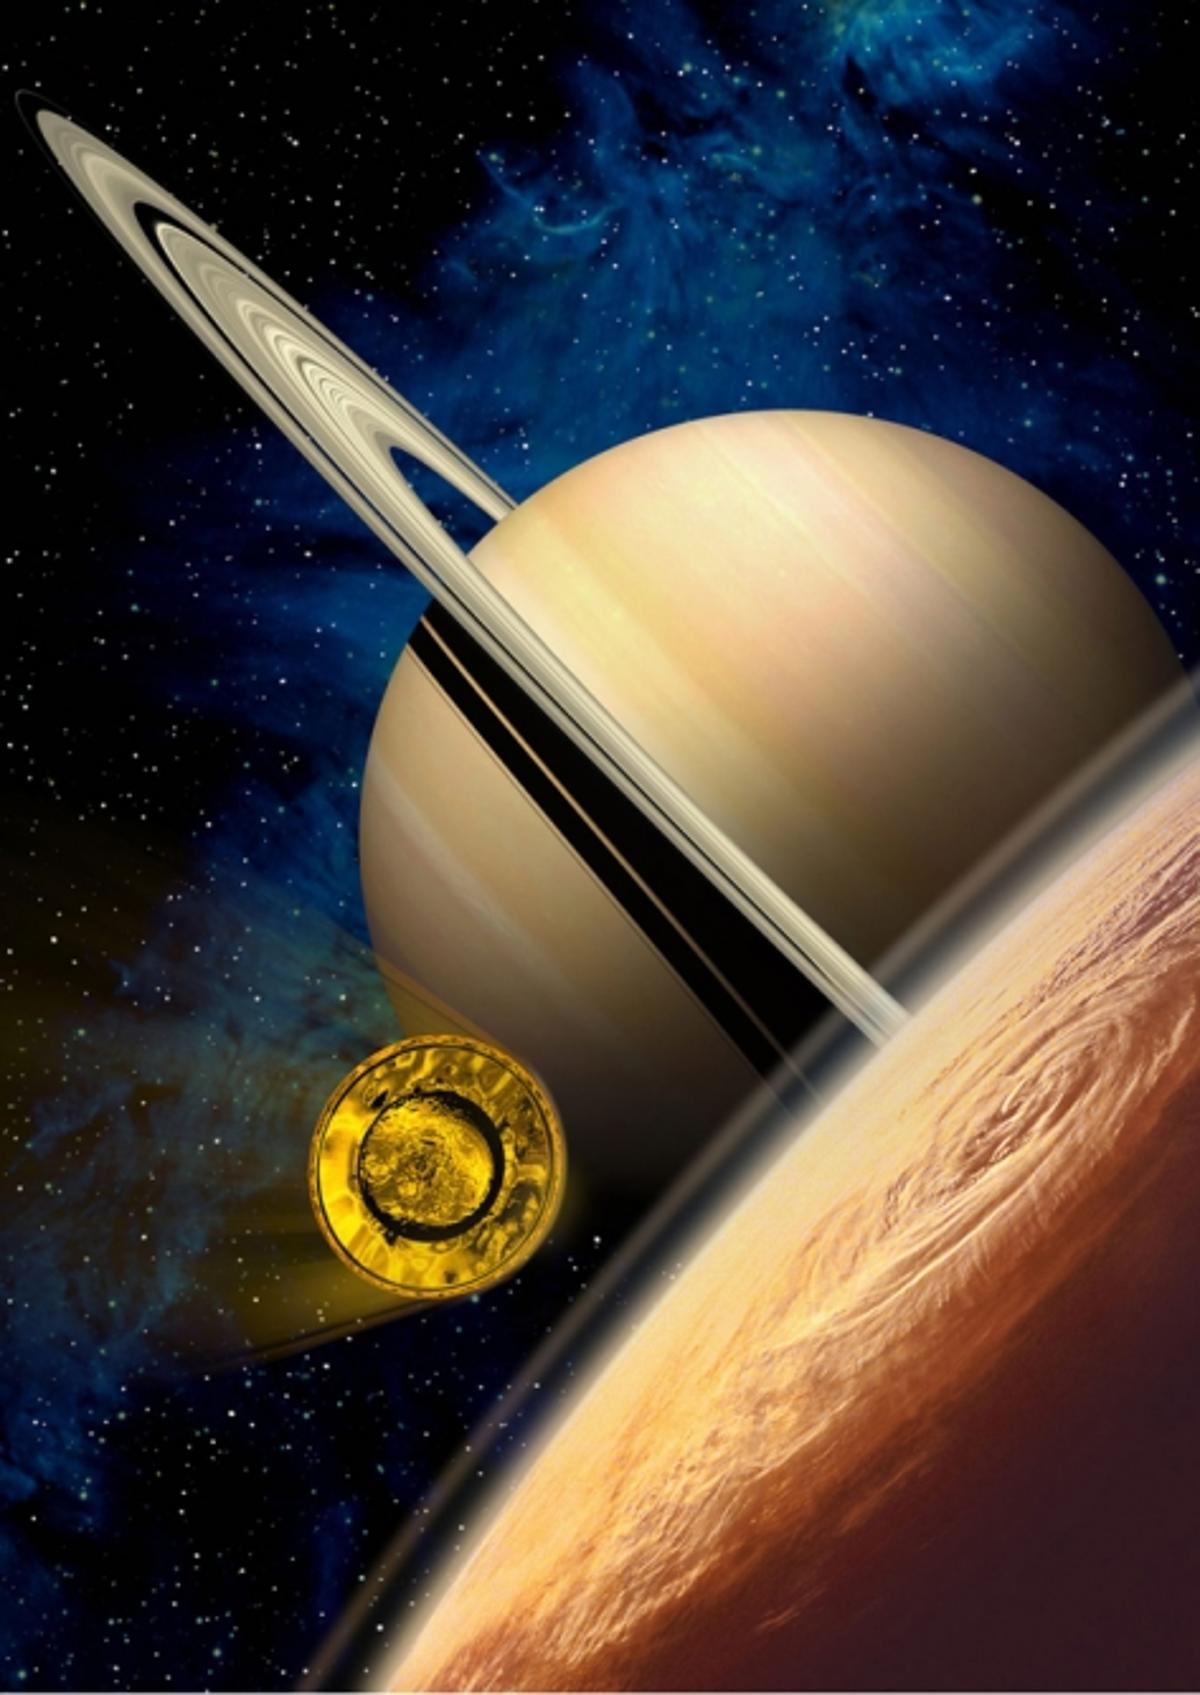 The Huygens Probe will enter the upper layers of Titan's atmosphere at 22000 km/h, slowing to about 1400 km/h in less than 2 minutes. Artists view courtesy of ESA-D. DUCROS